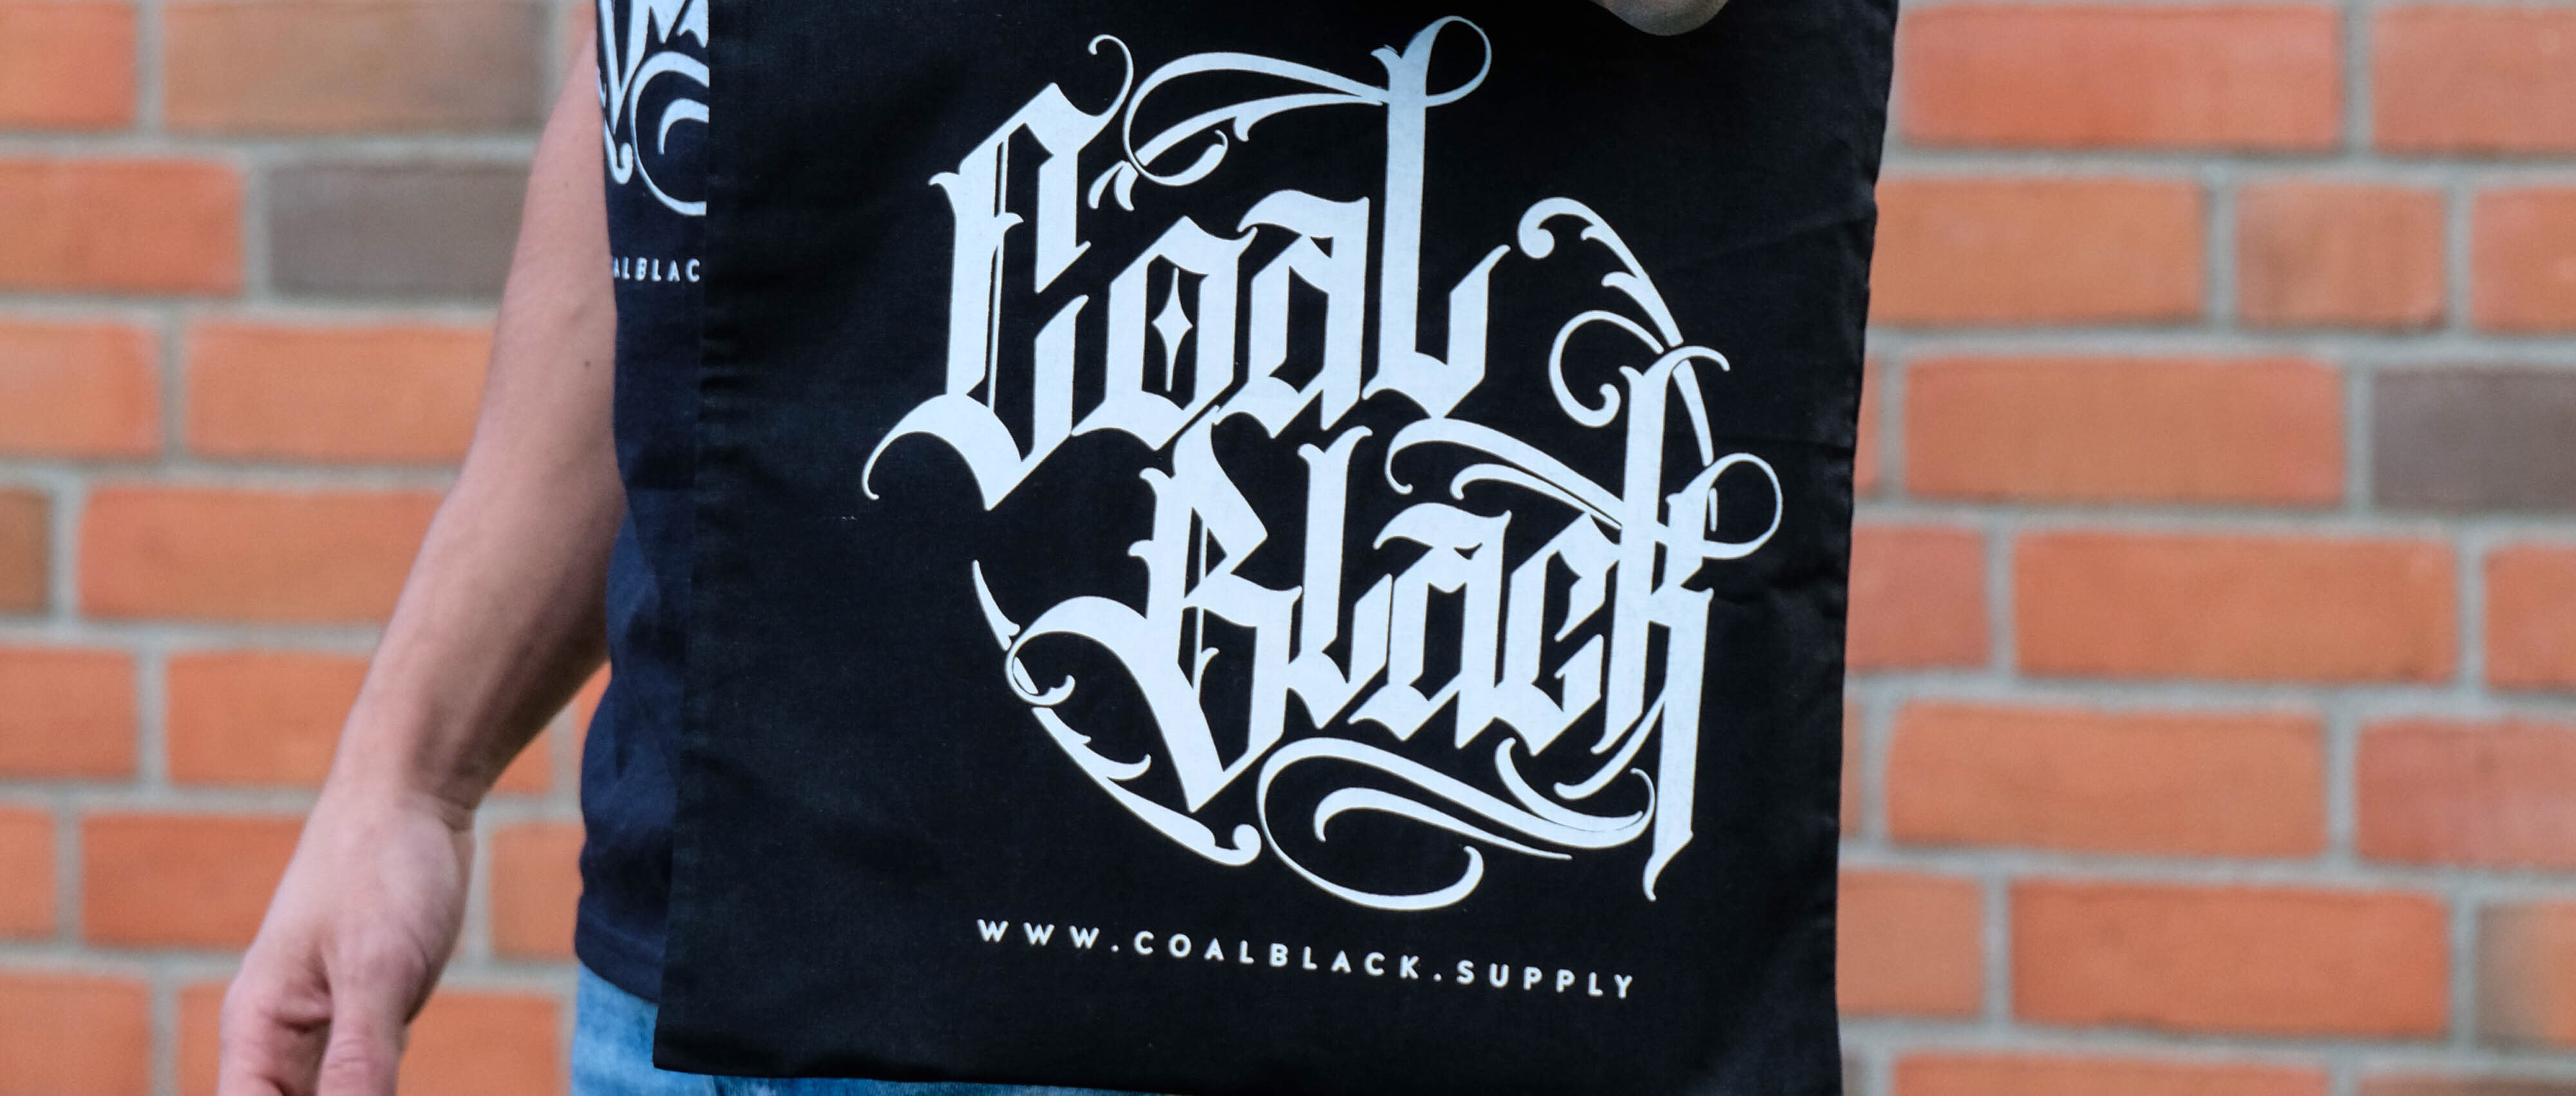 Coal Black - Merchandise